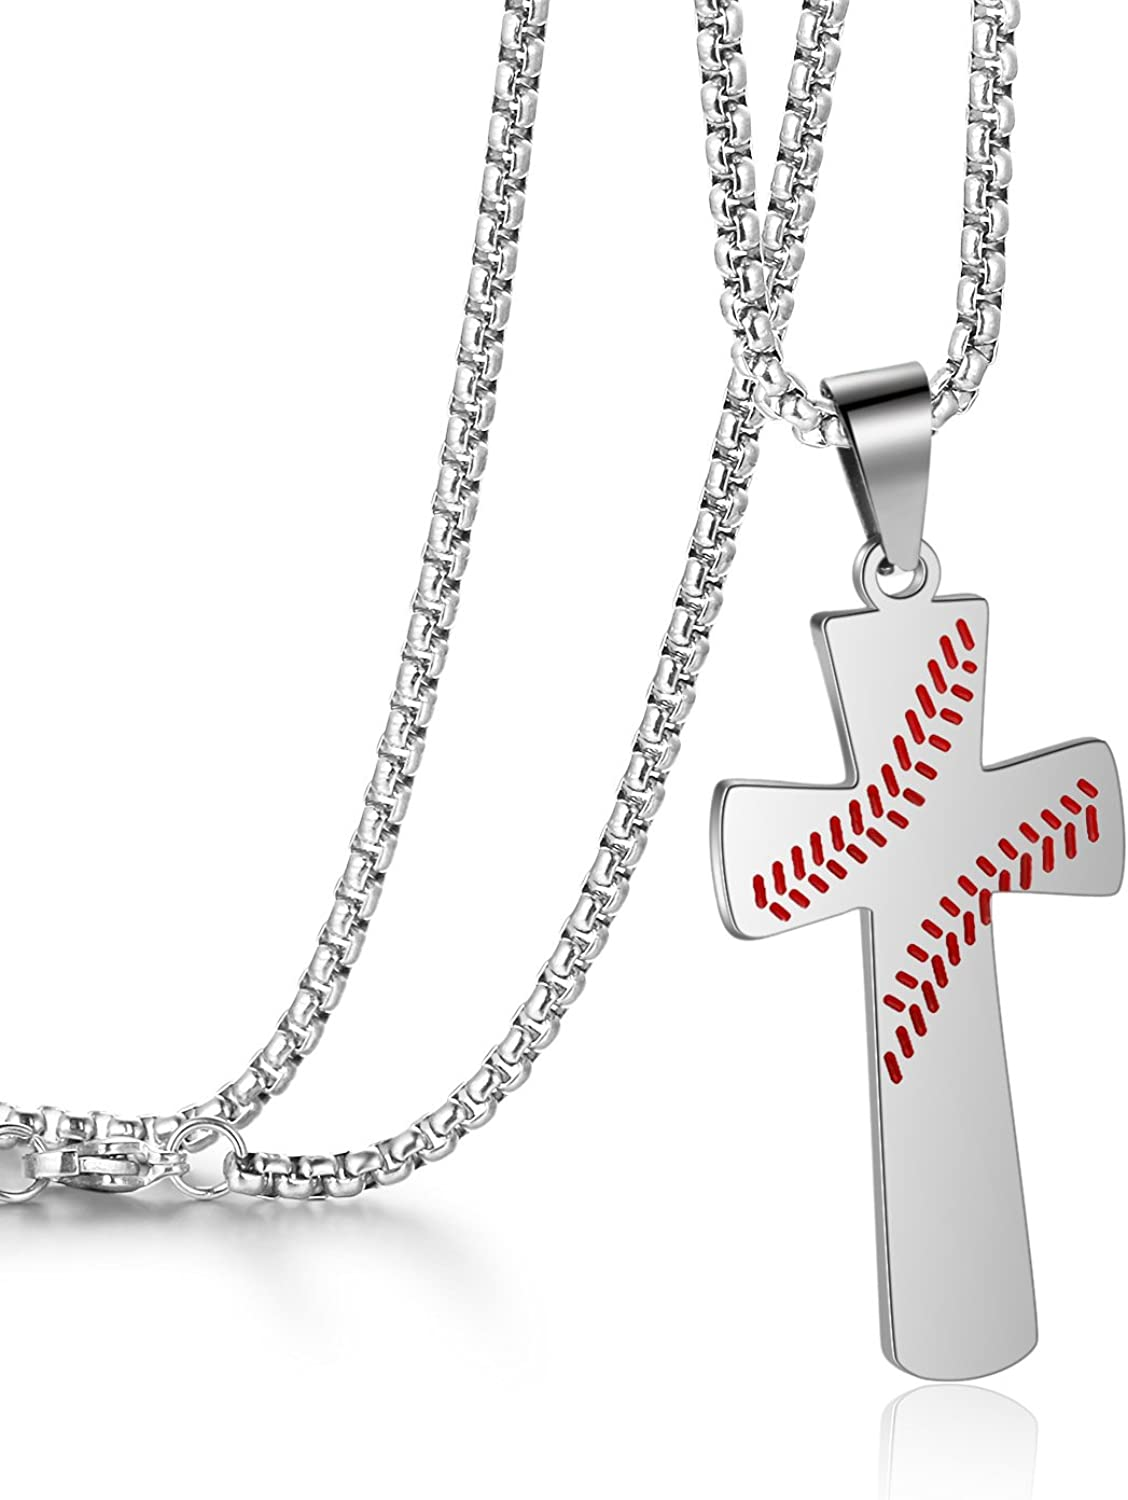 Cross Necklace for Men Baseball Pendant I CAN DO ALL THINGS STRENGTH Bible Verse Stainless Steel Necklace